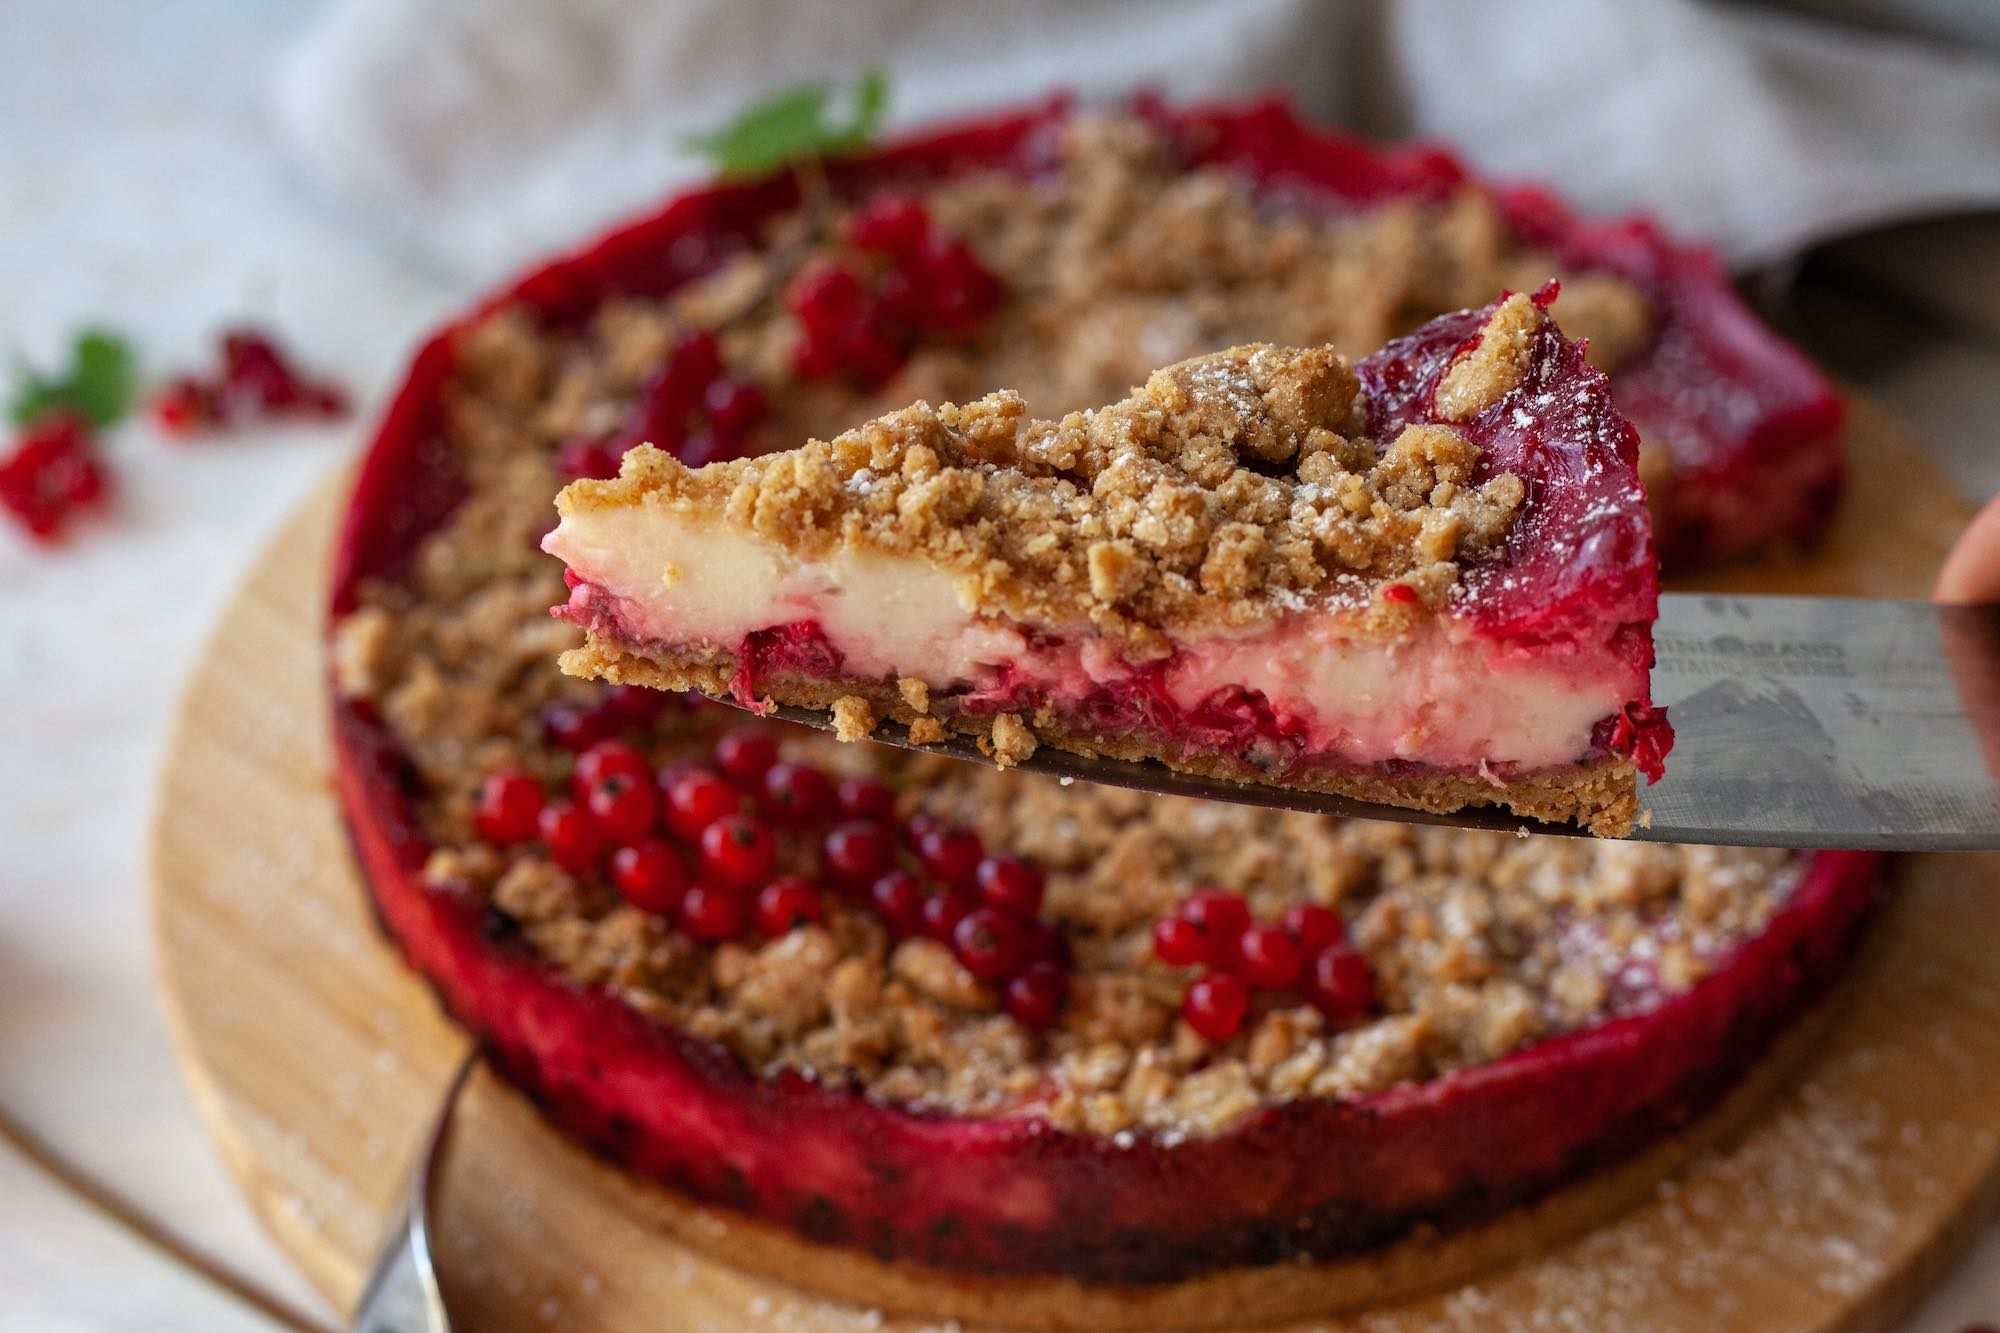 Vegan Red Currant Cheesecake